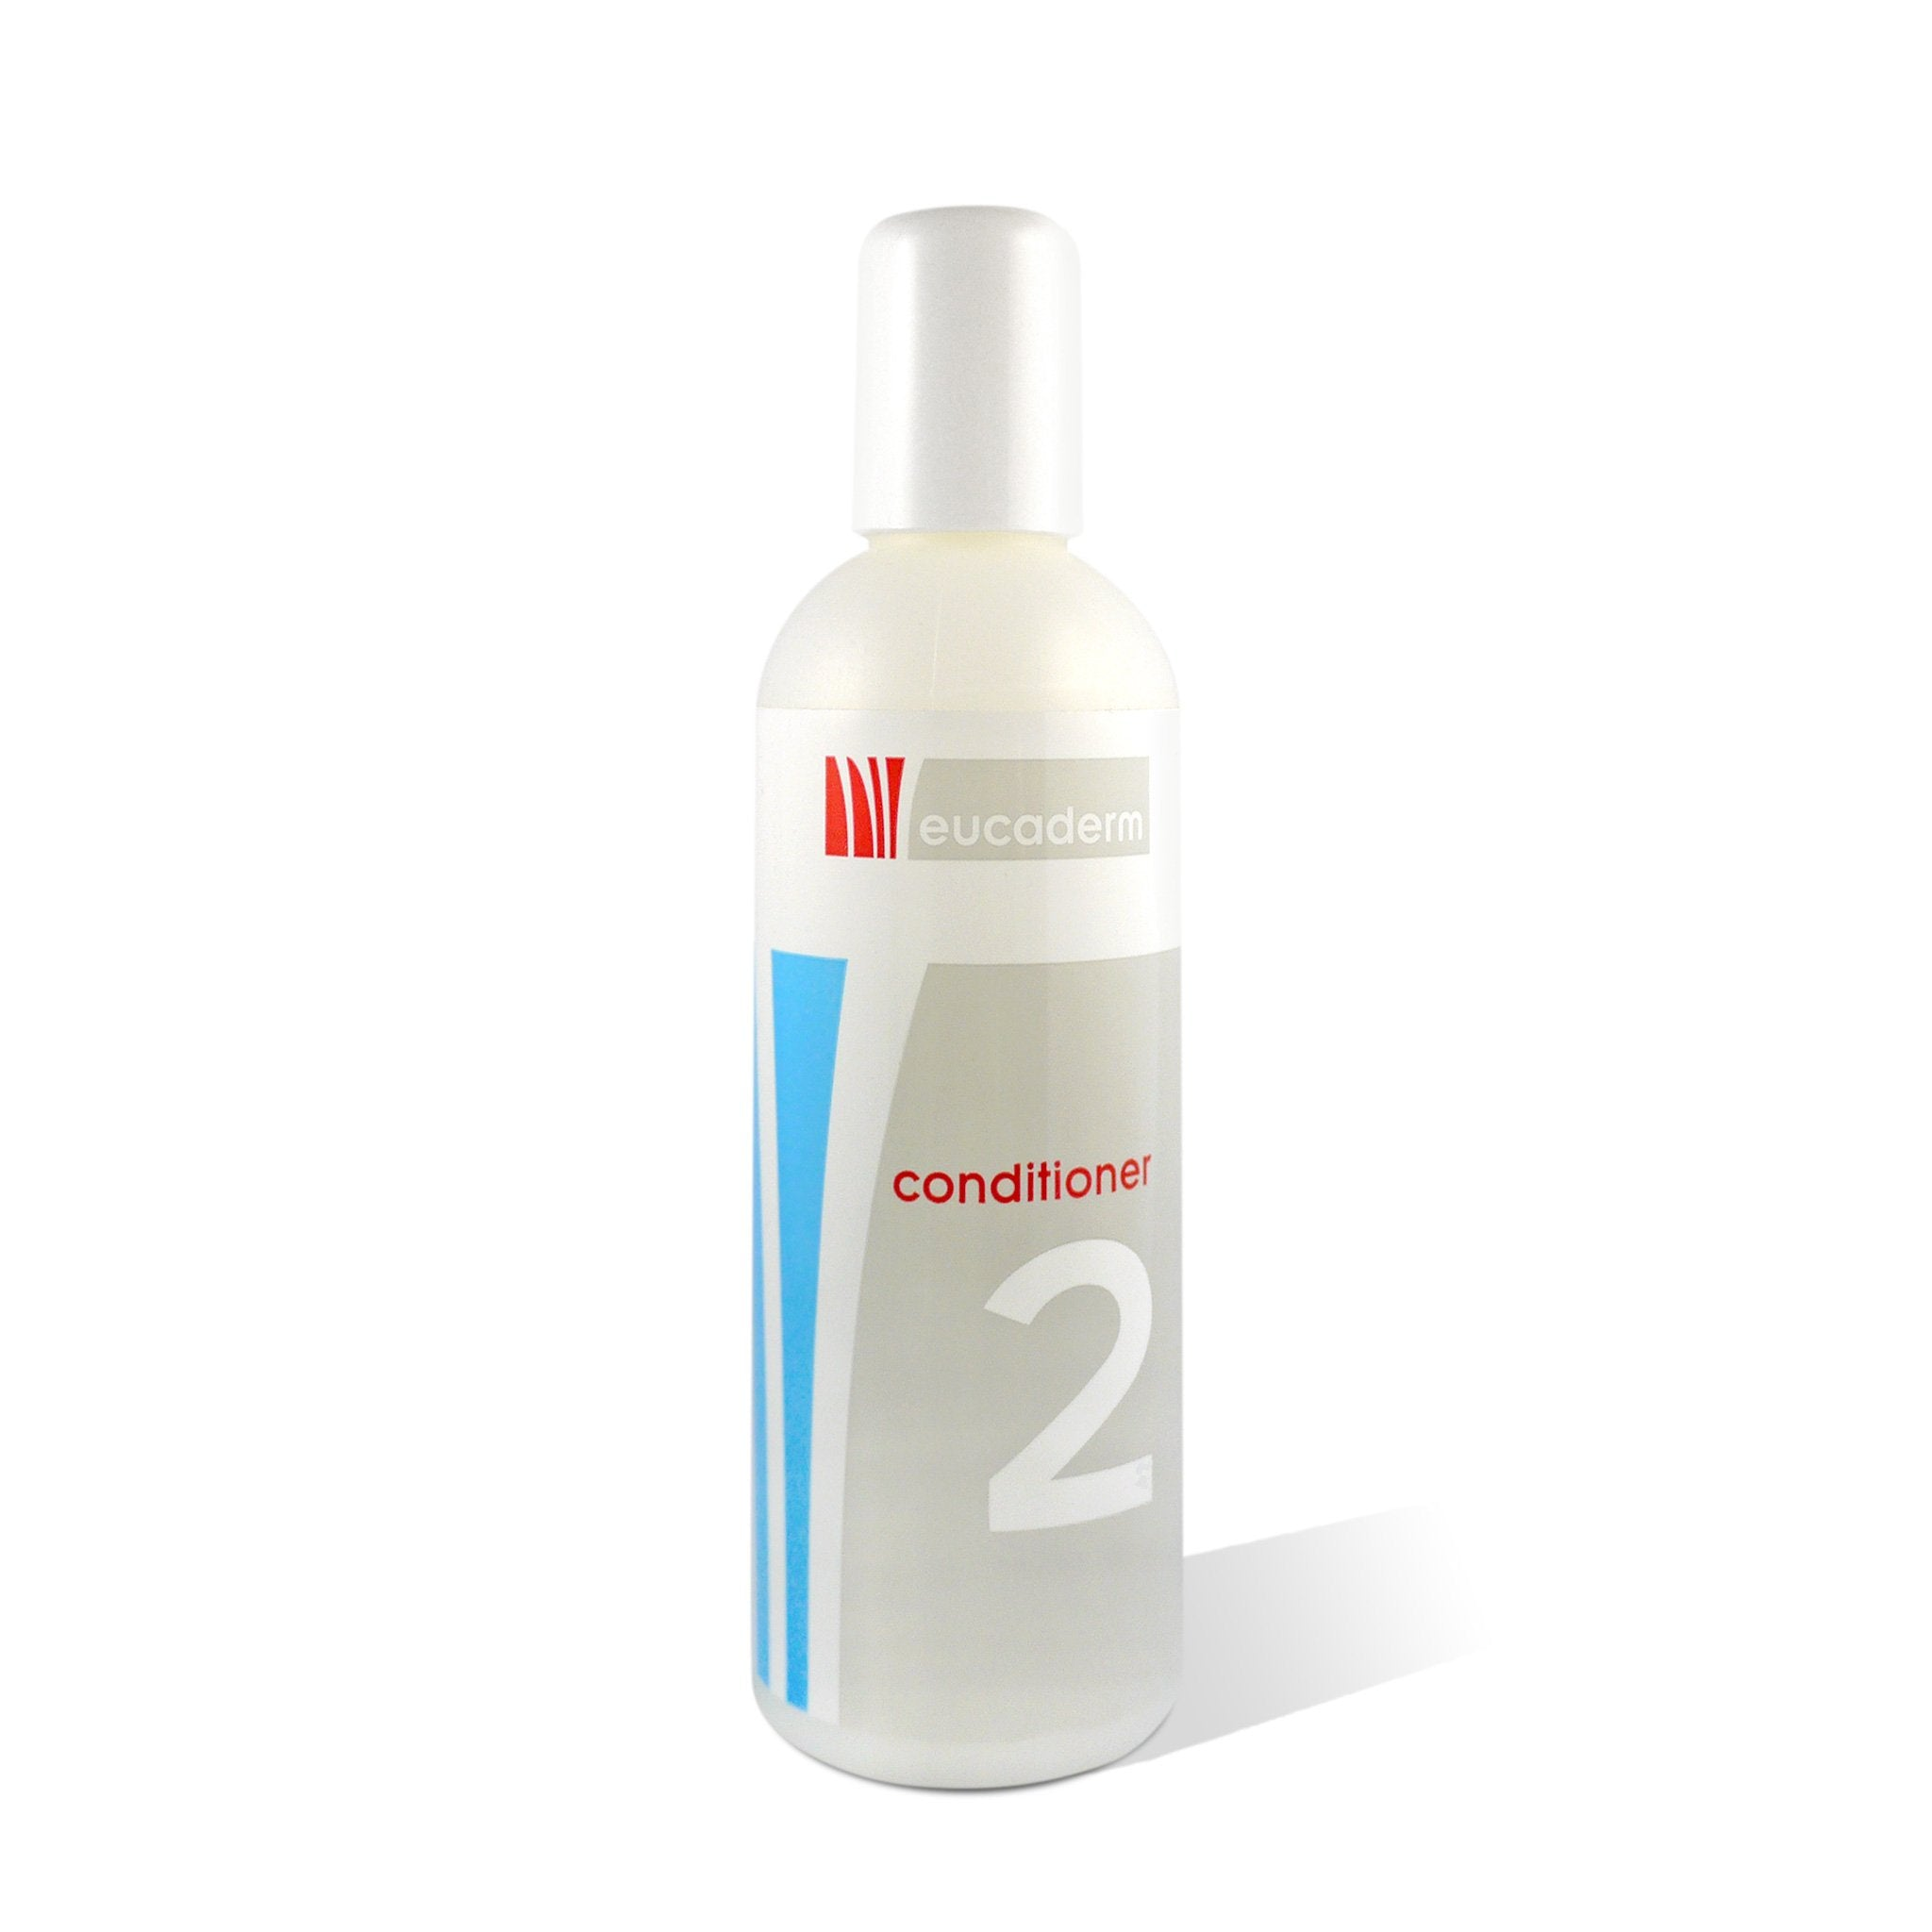 Eucaderm Conditioner No 2 (200ml)